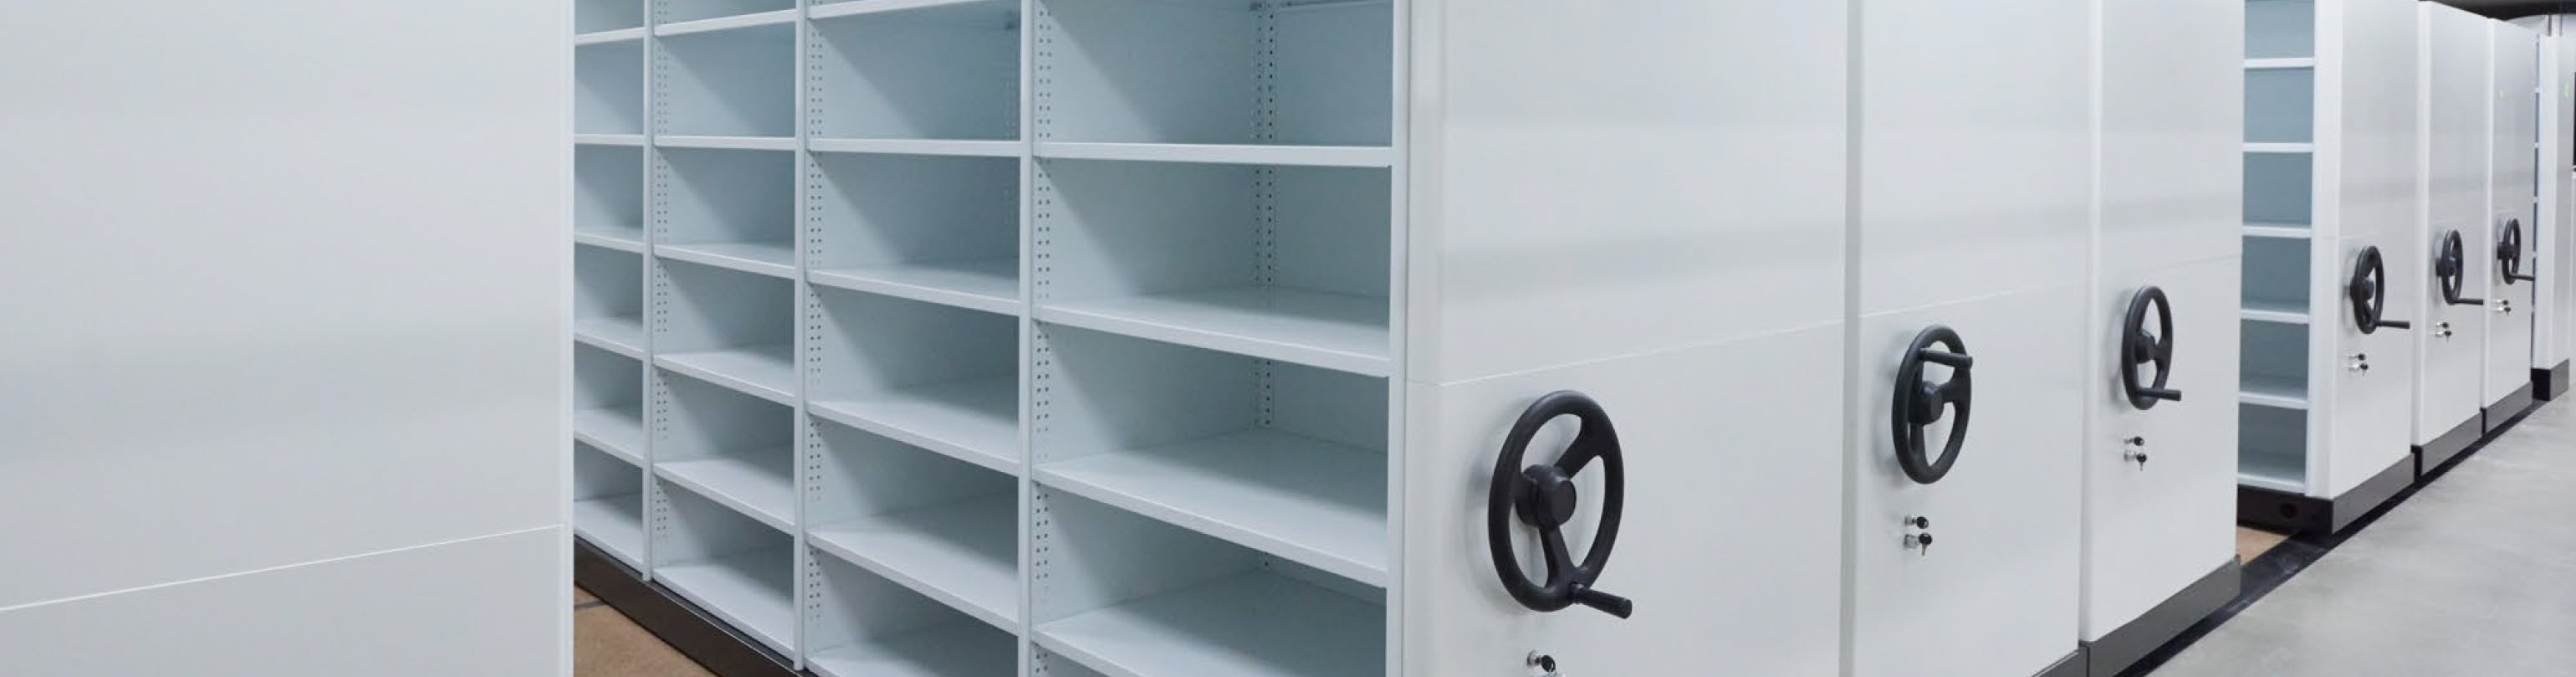 APC Ezi-Drive Mobile Shelving Storage Unit